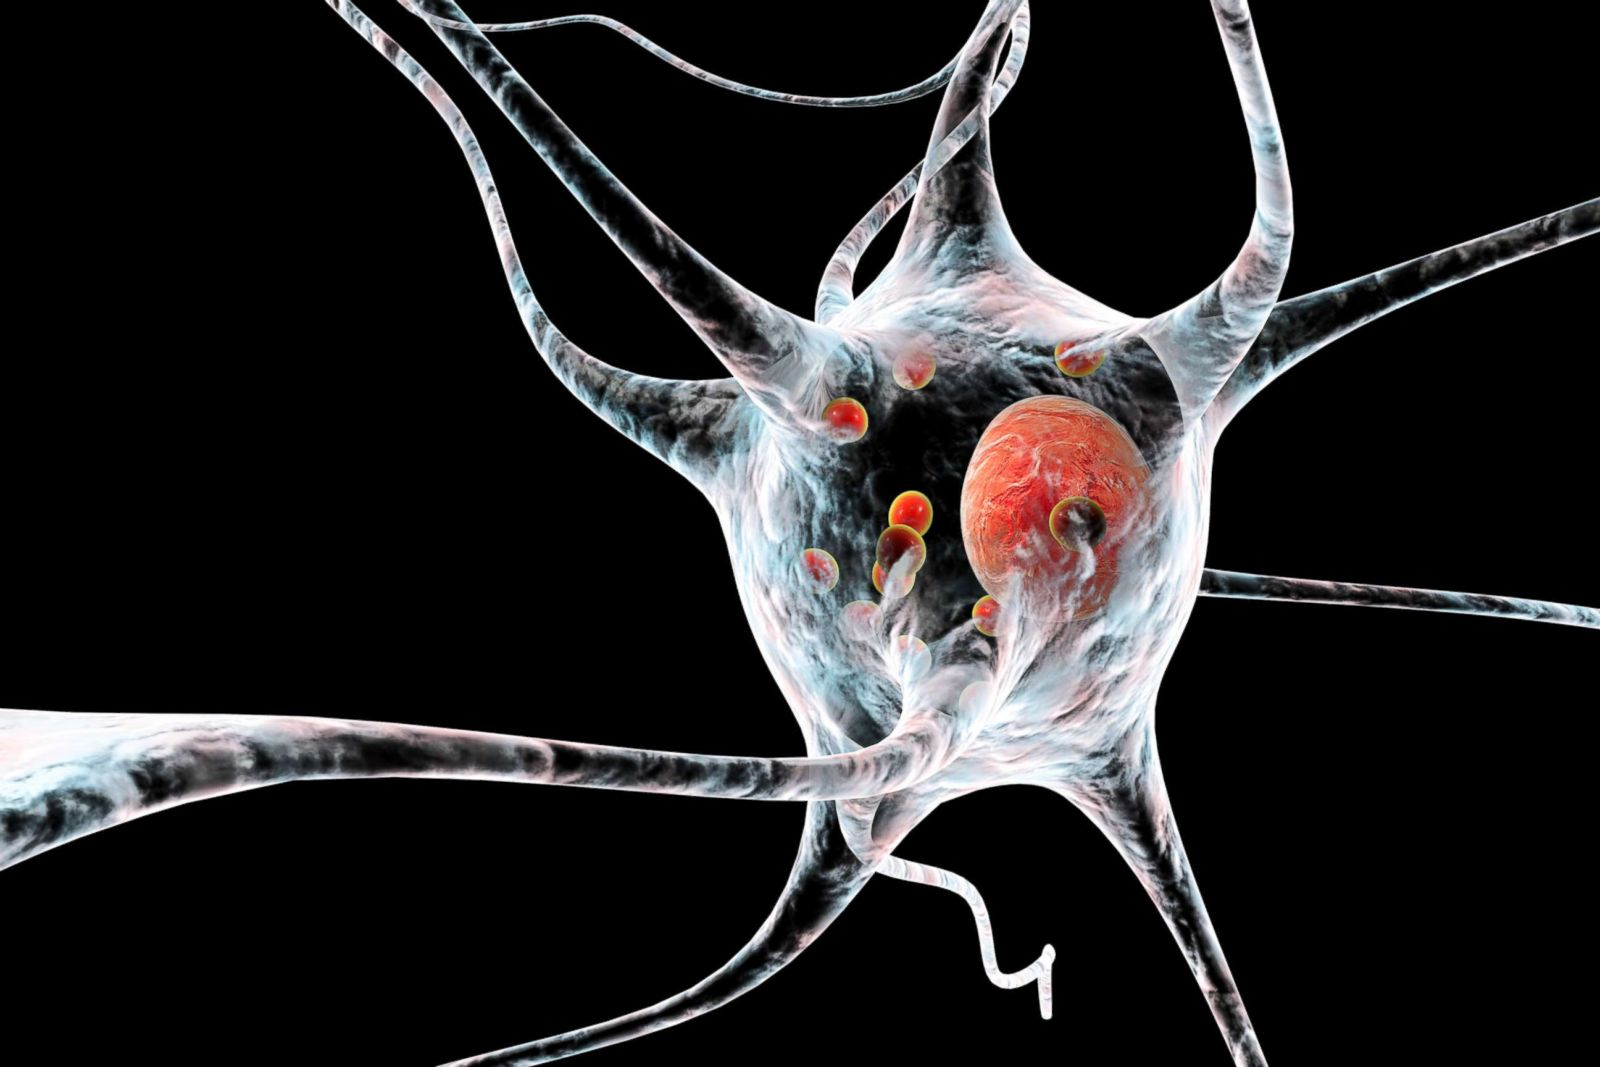 Long-term effects of ADHD? Study links disorder to Parkinson's, but